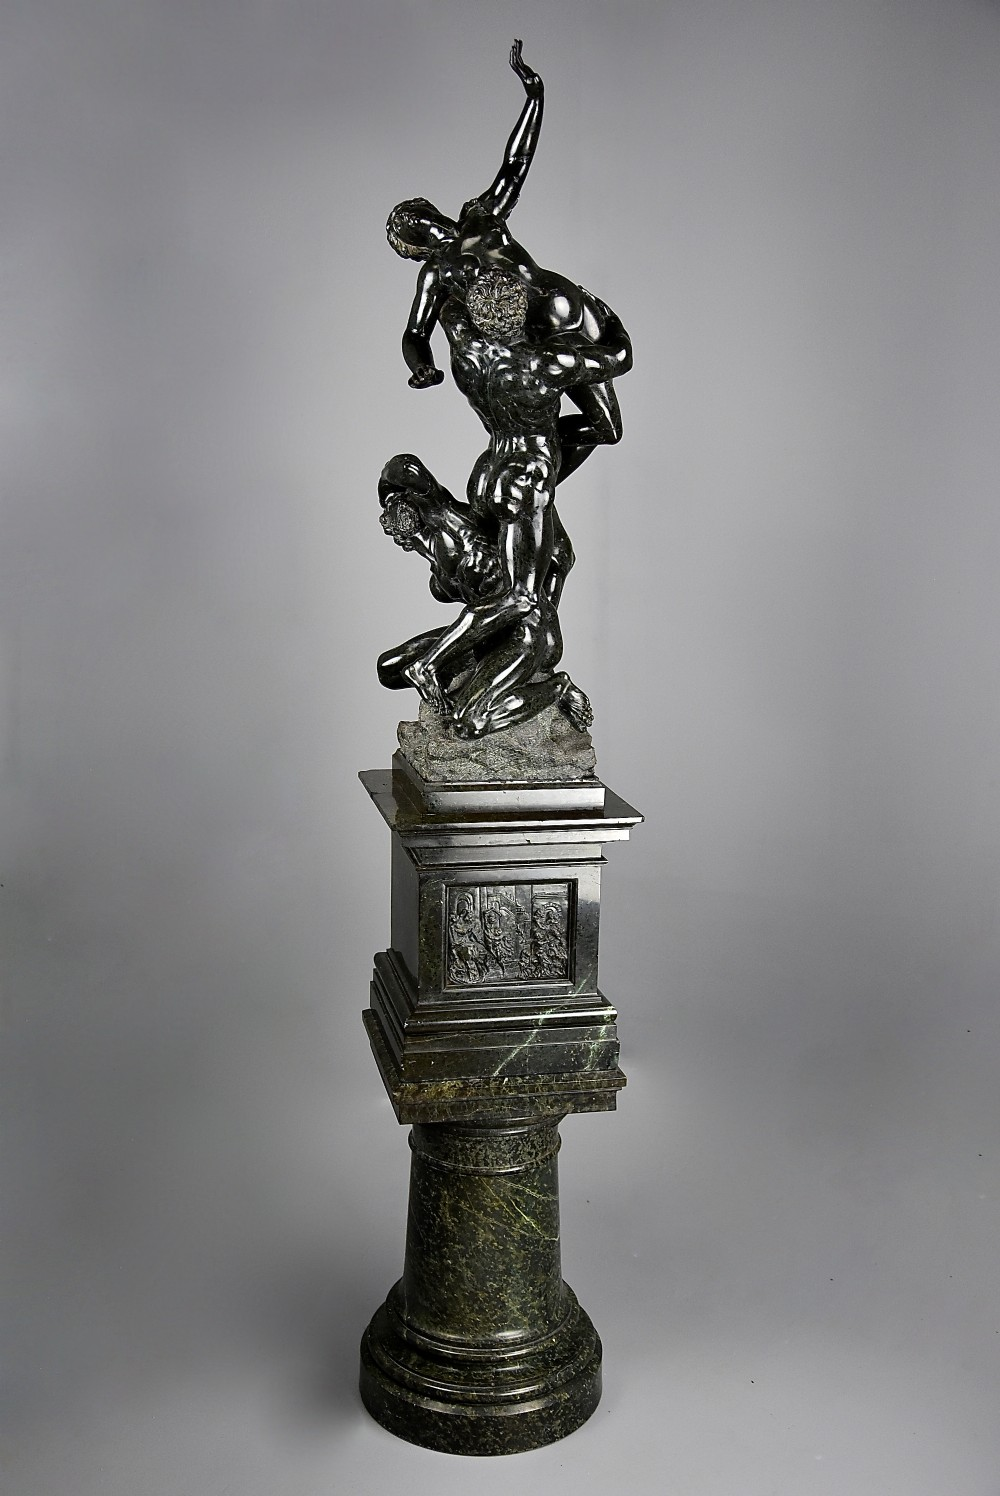 large 19thc italian grand tour verde prato sculpture of the abduction of the sabine women after the original by giambologna